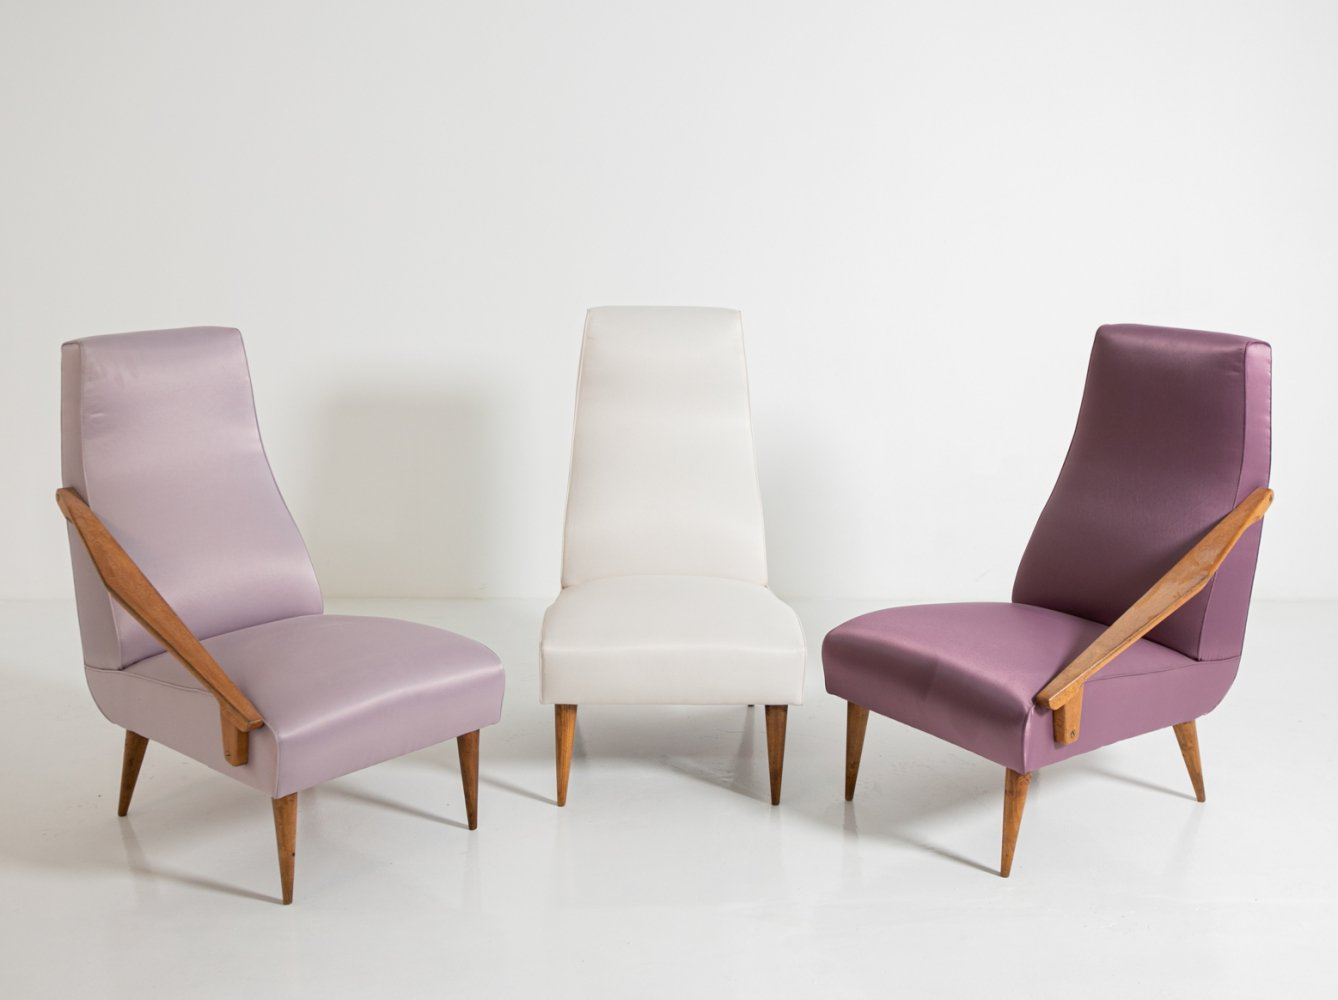 Set of three armchairs by Gio Ponti for Boucher & Fils Edition, 1950s